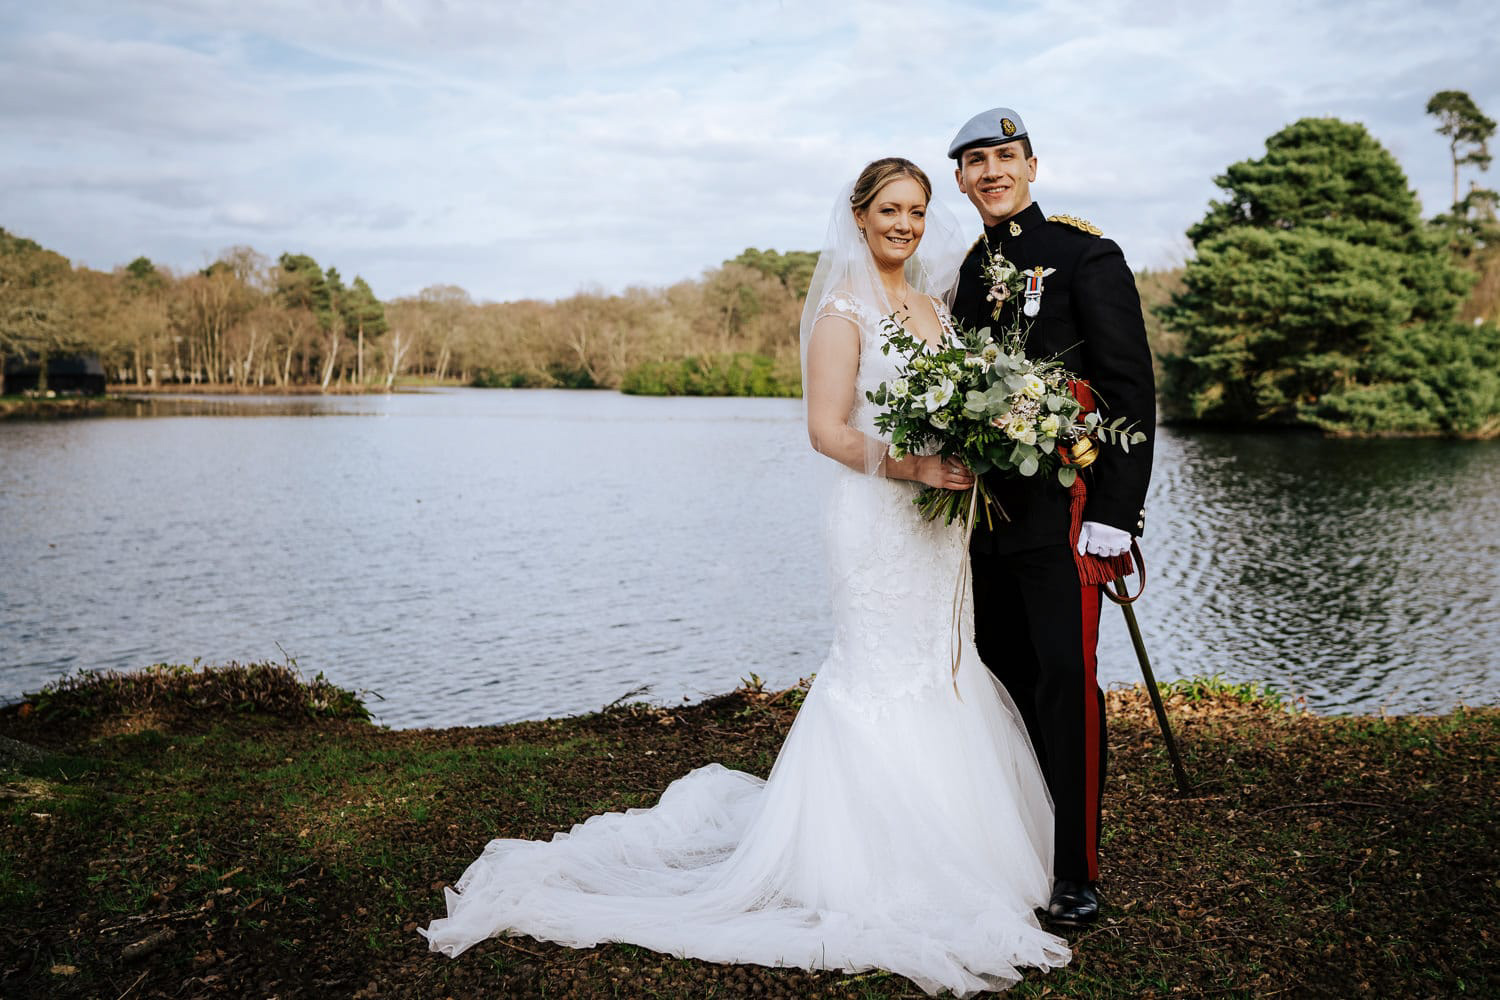 Bride-and-groom-portraits-militaryjpg.jpg